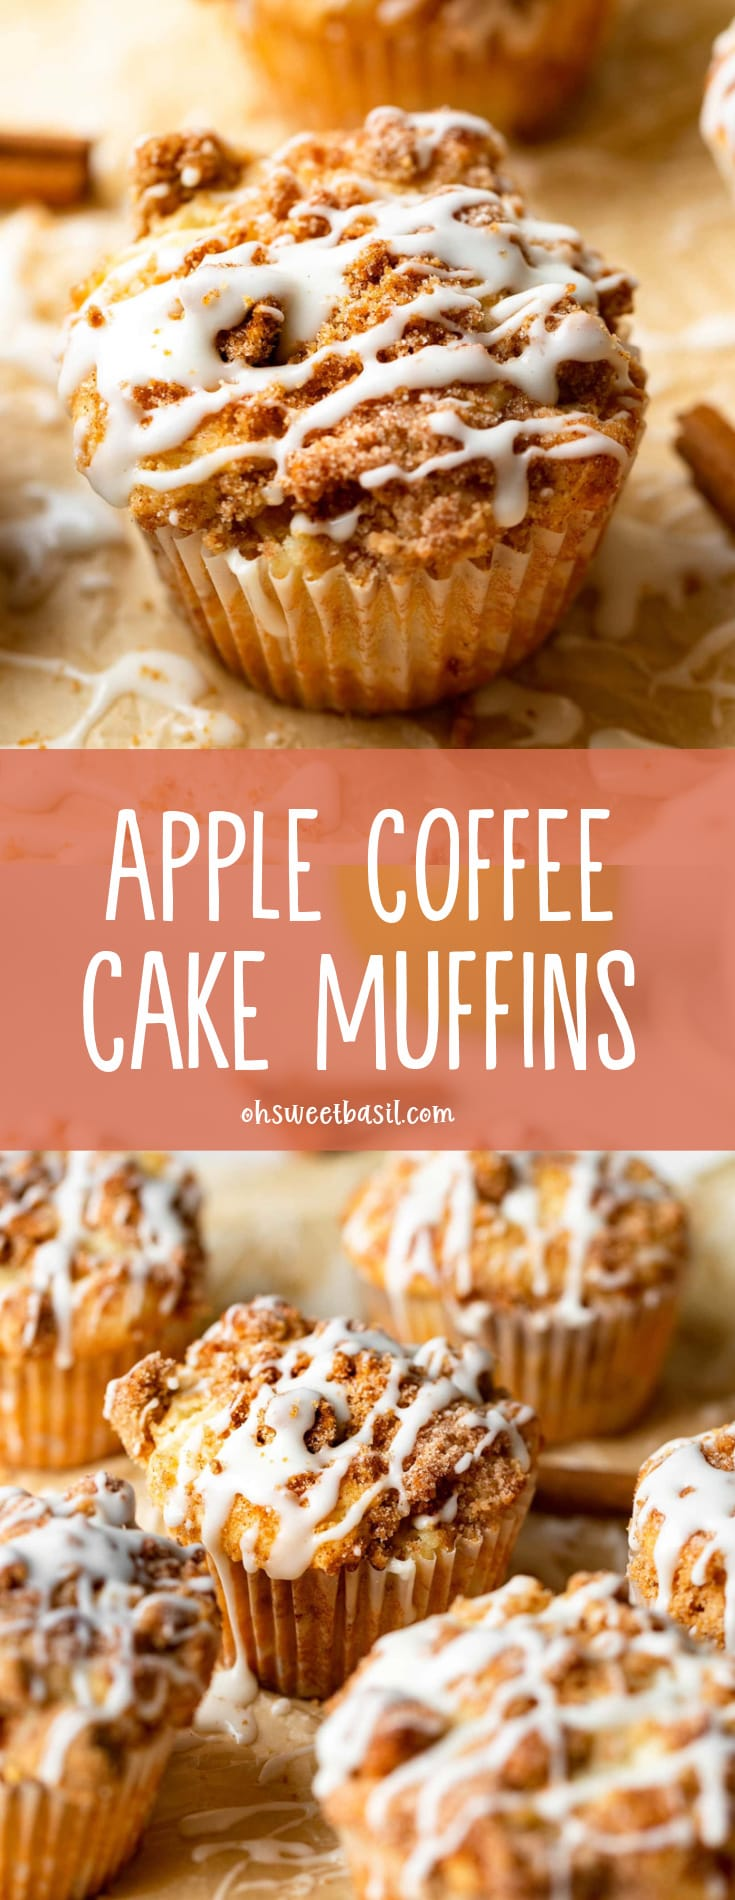 an apple coffee cake muffin with streusel and icing